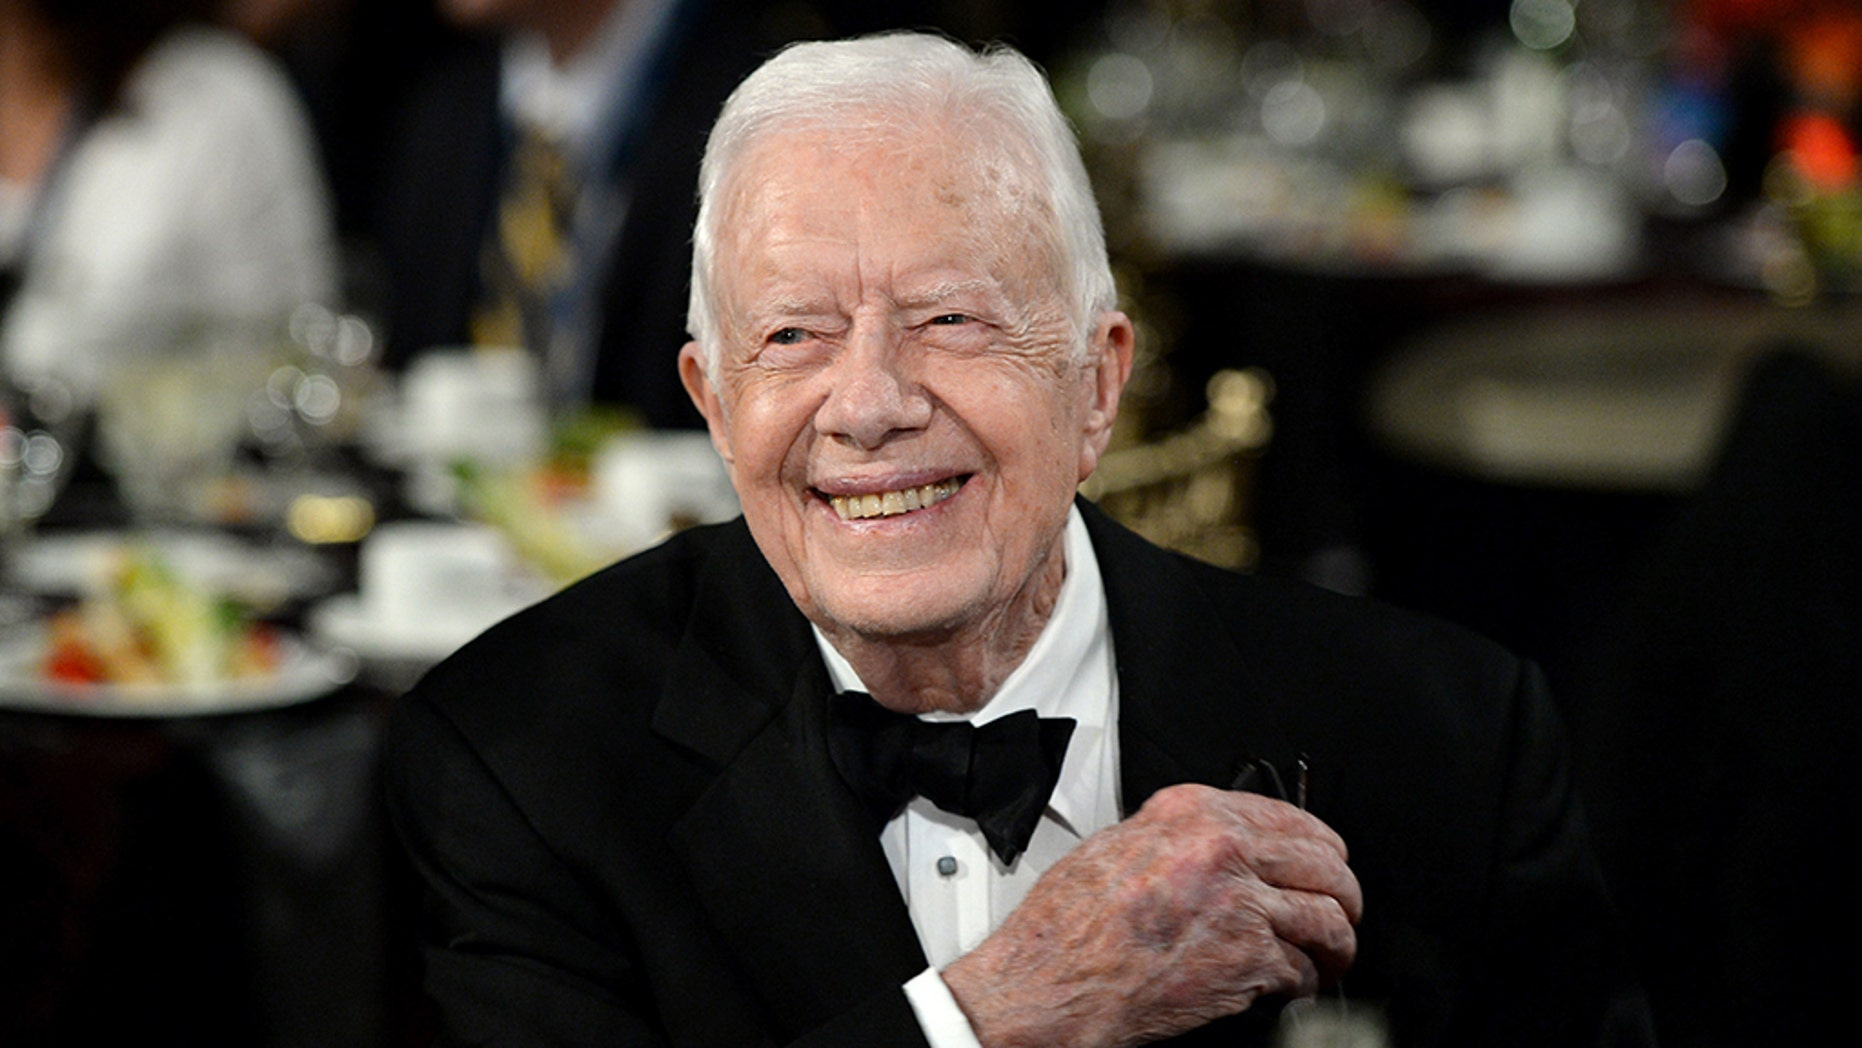 Jimmy Carter, who served as the 39th president of the U.S., won his third Grammy award on Sunday night.